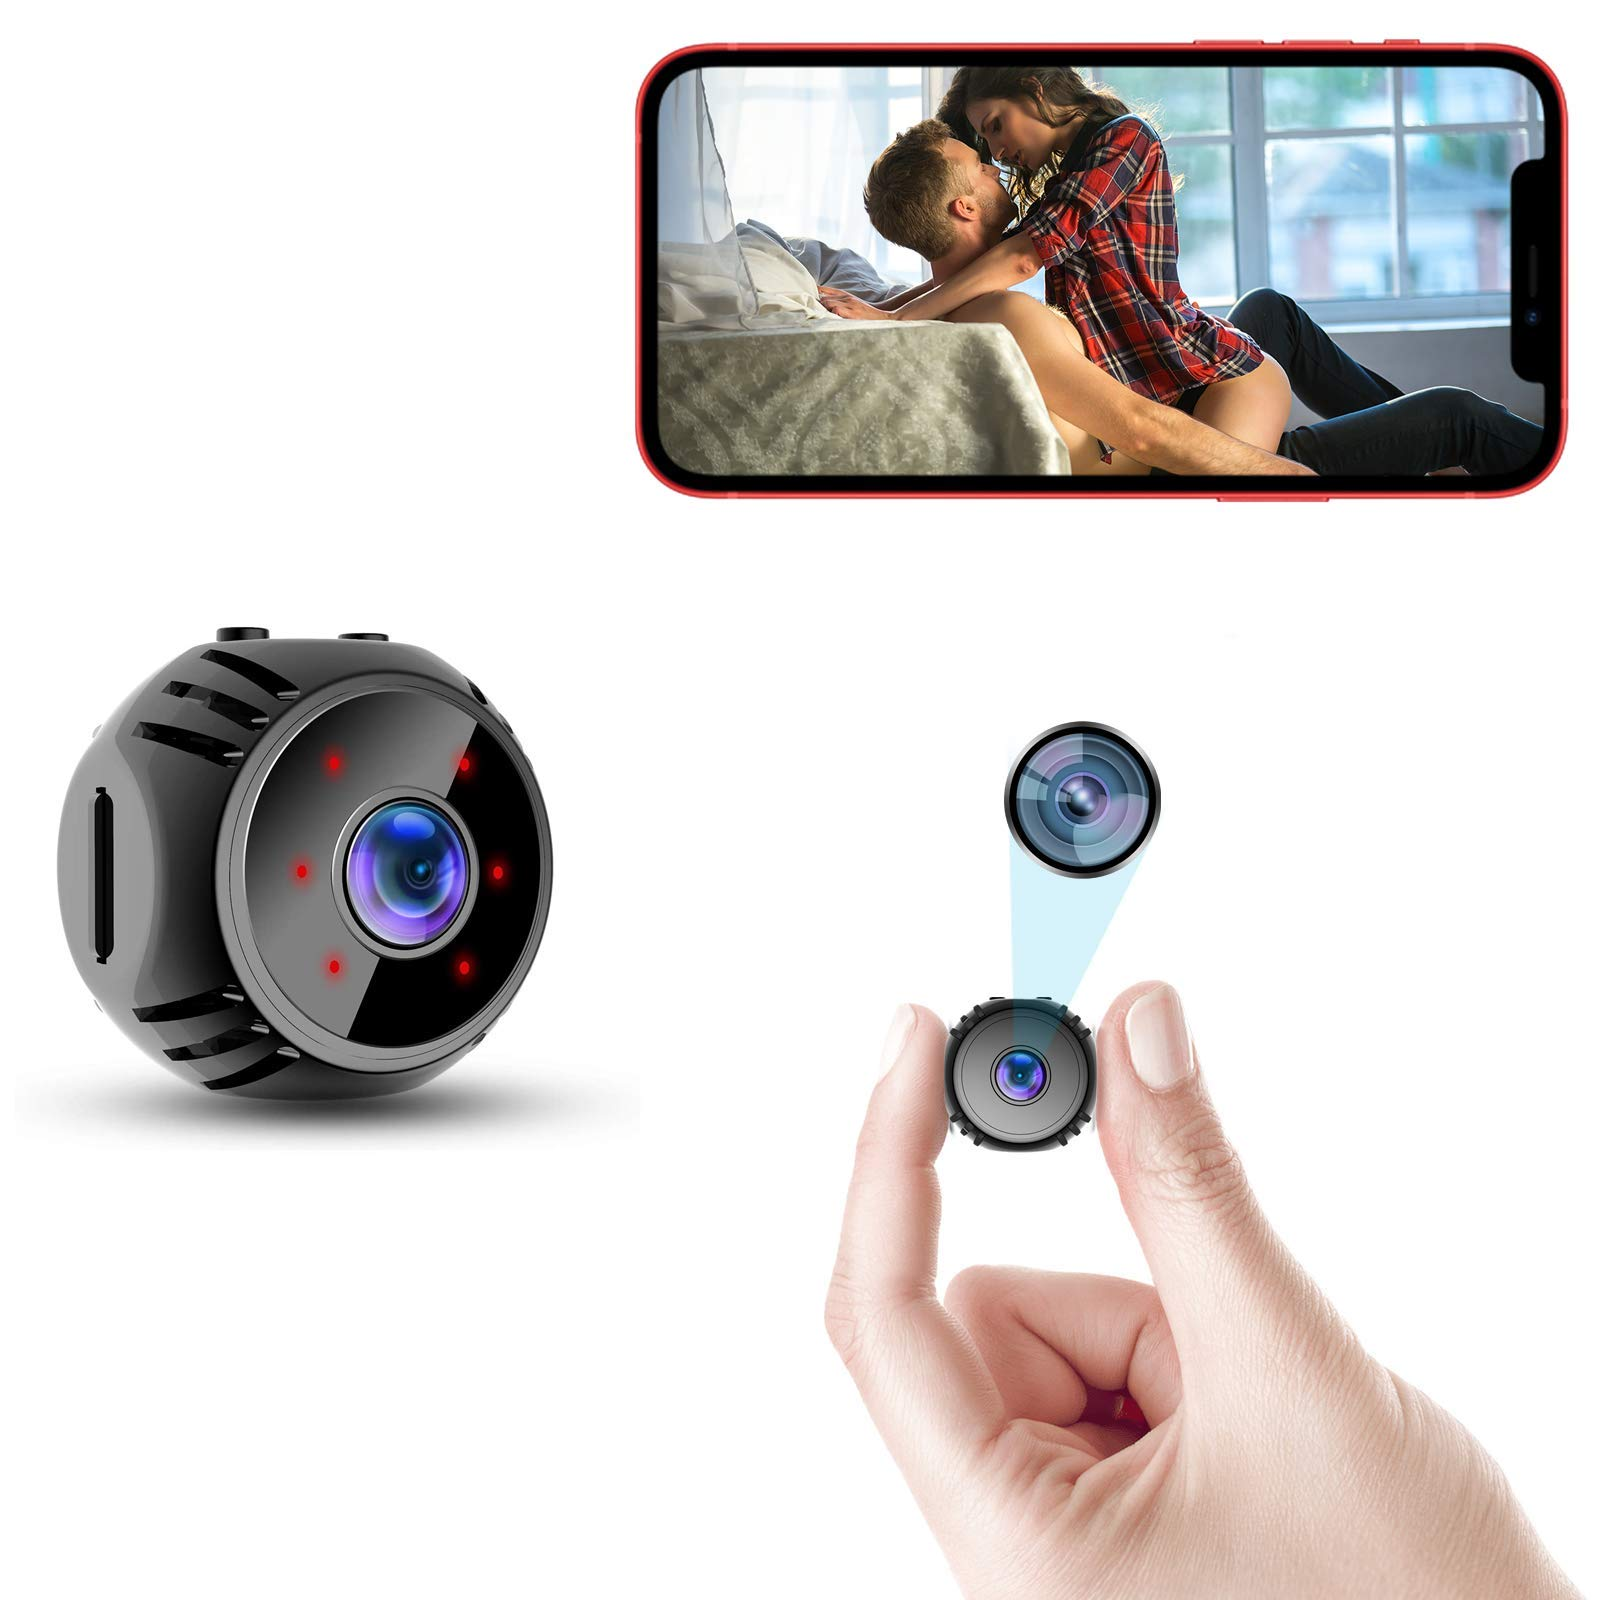 Mini Spy Camera WiFi 2021 Small Wireless Baby Monitor Home Security Surveillance Nanny Cam with Live Feed Phone APP Night Vision Motion Activated Real Time Indoor Video Recorder